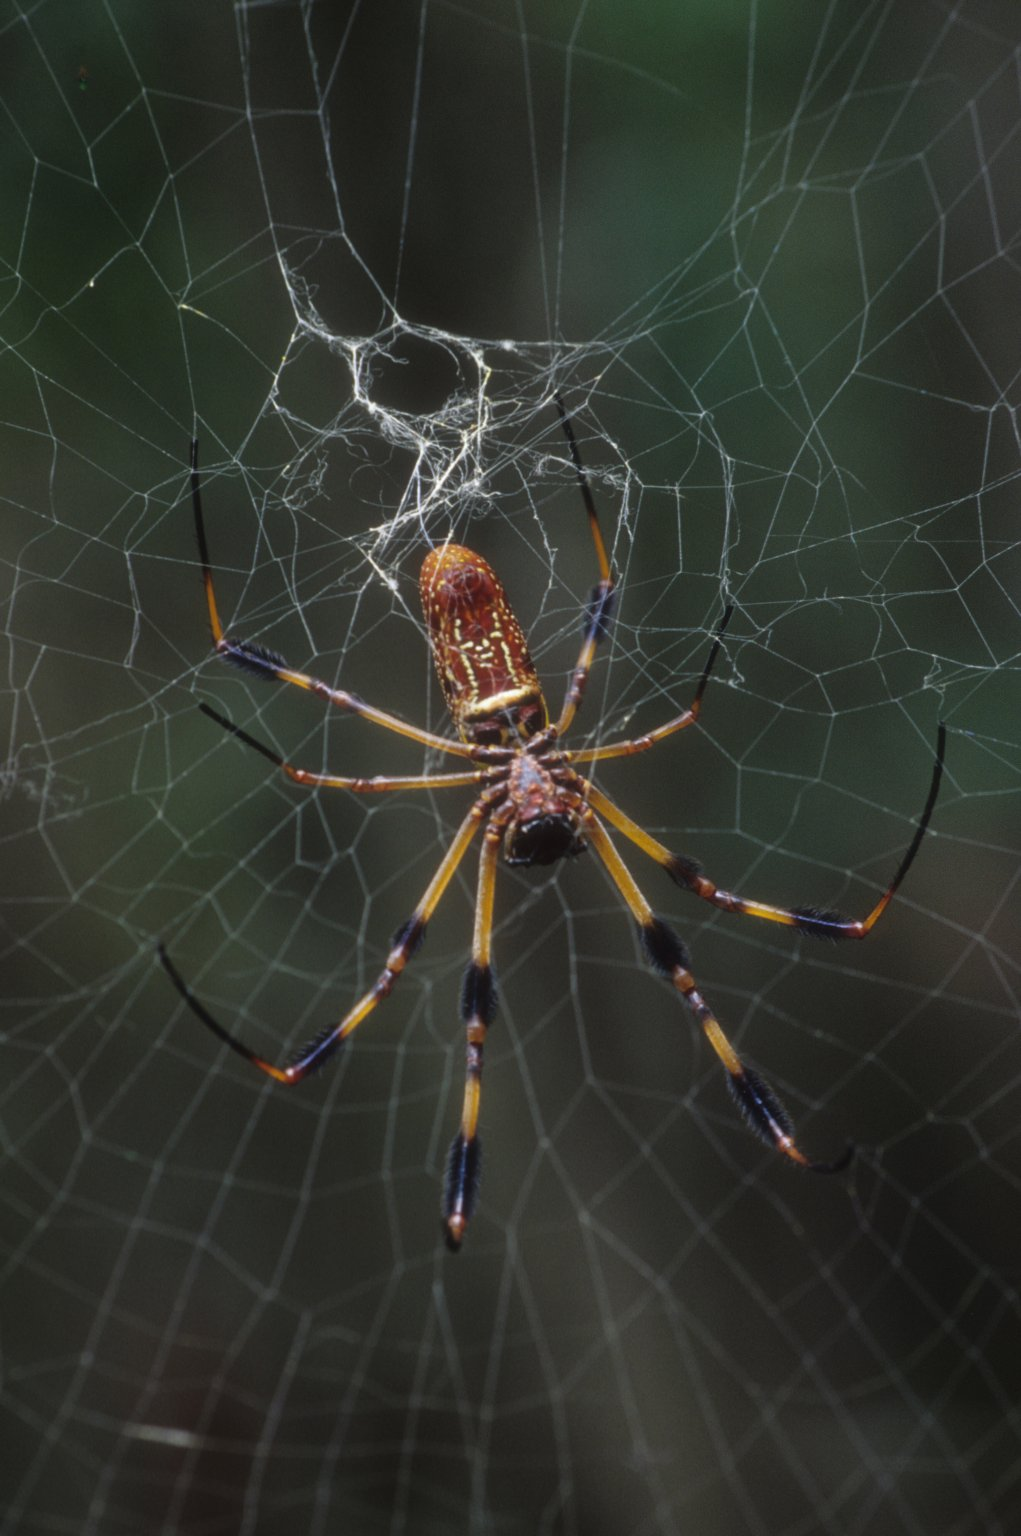 Golden silk orb weaver (Araneidae)